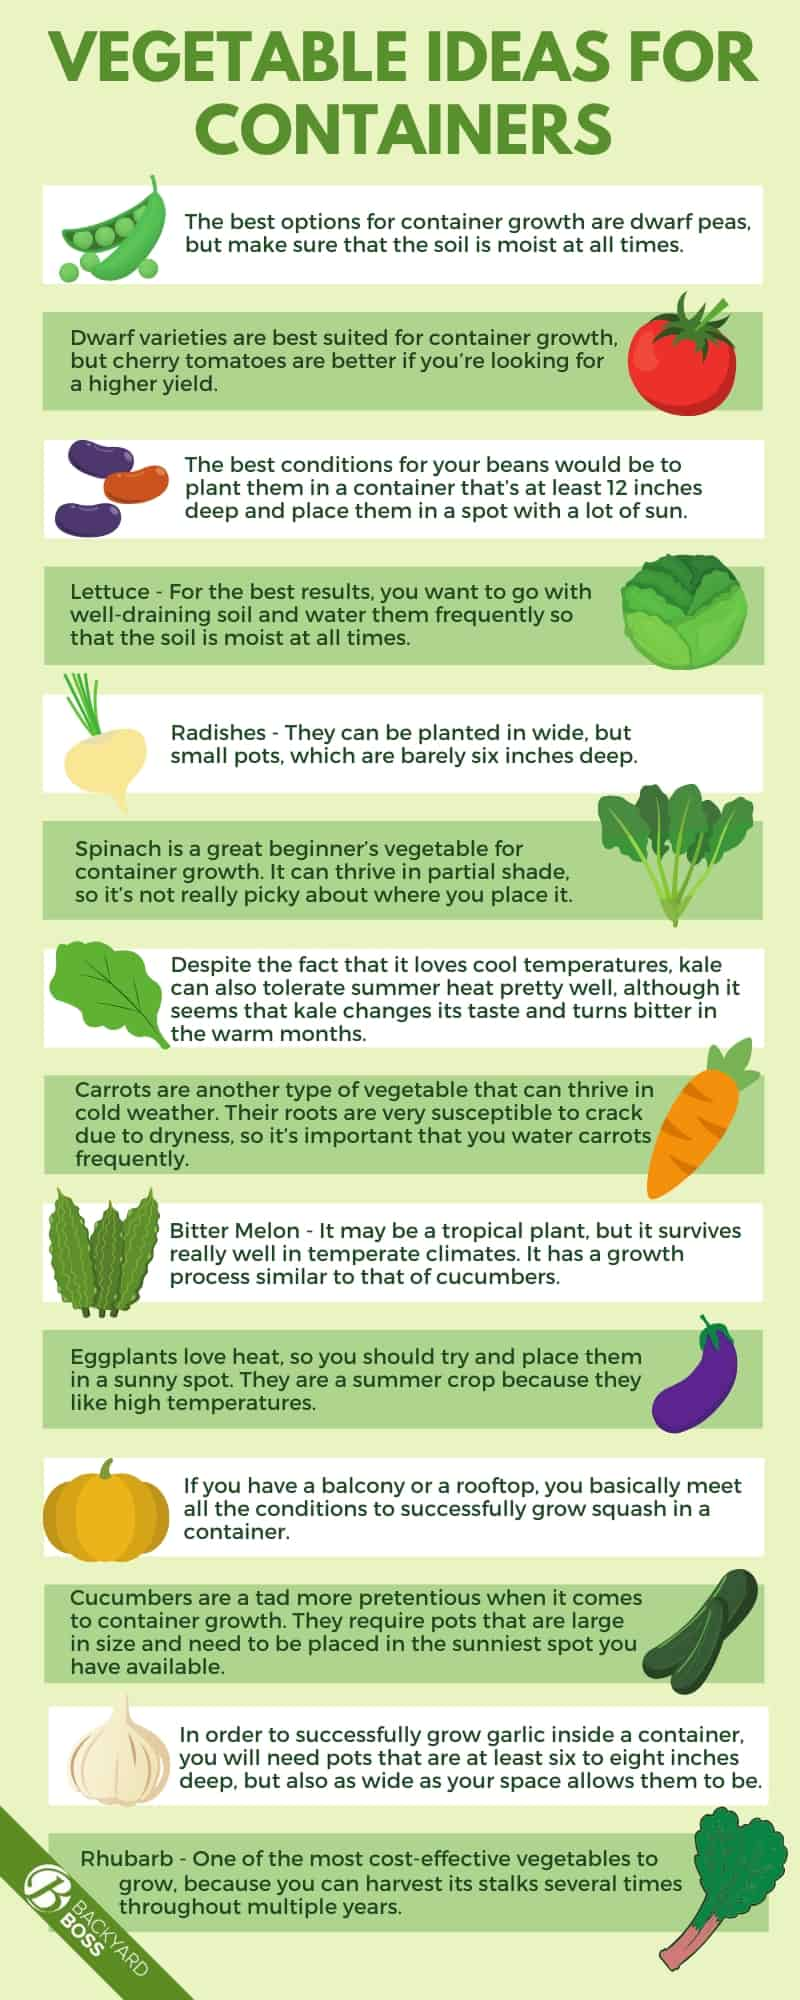 Vegetable Ideas for Containers - infographic